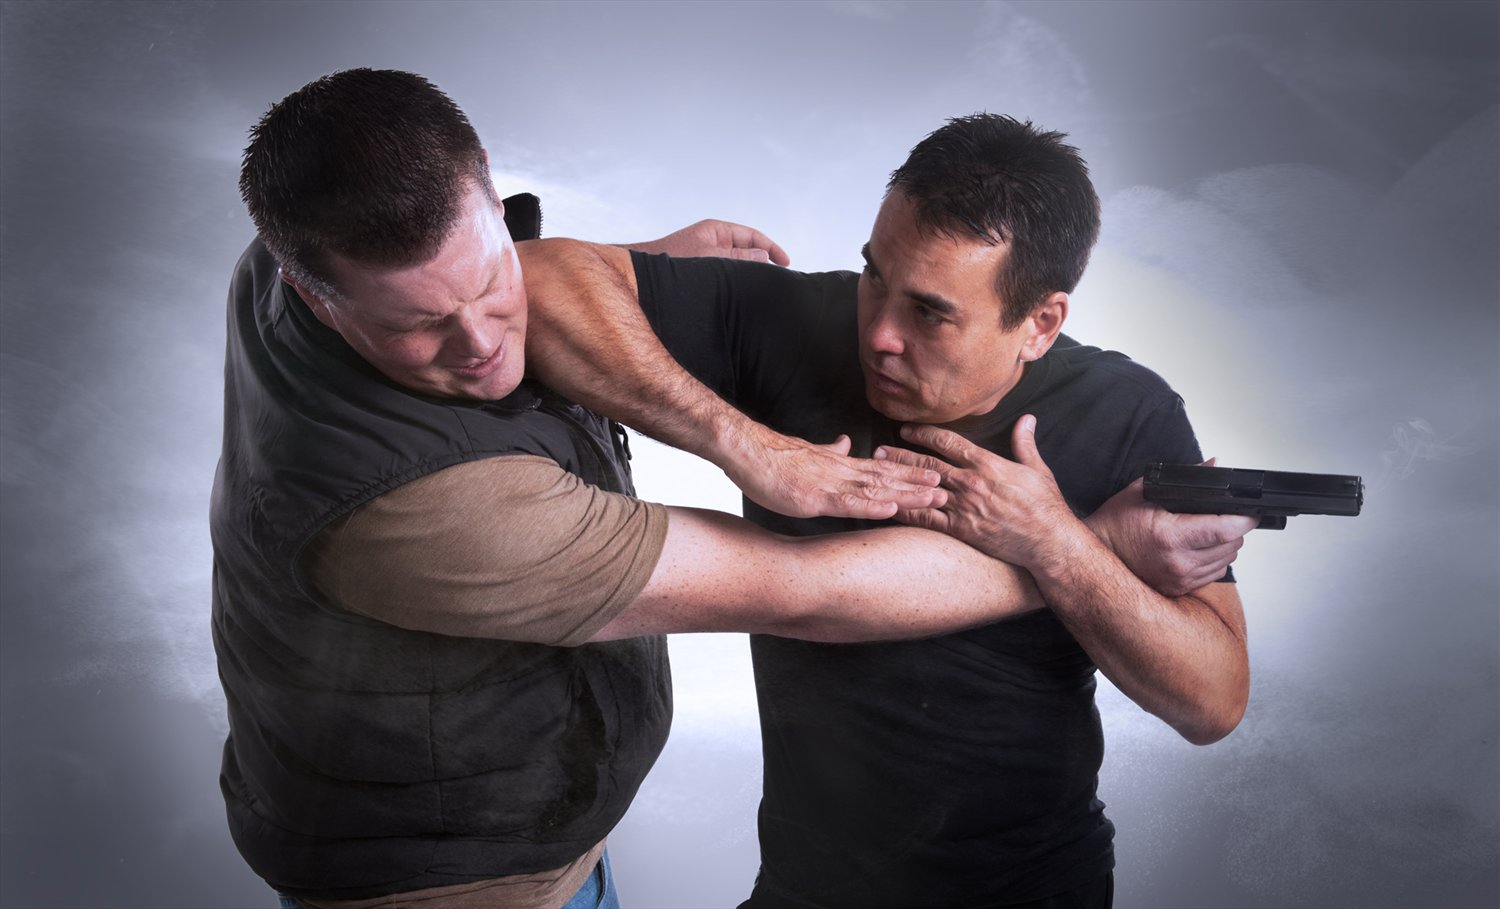 krav maga technique